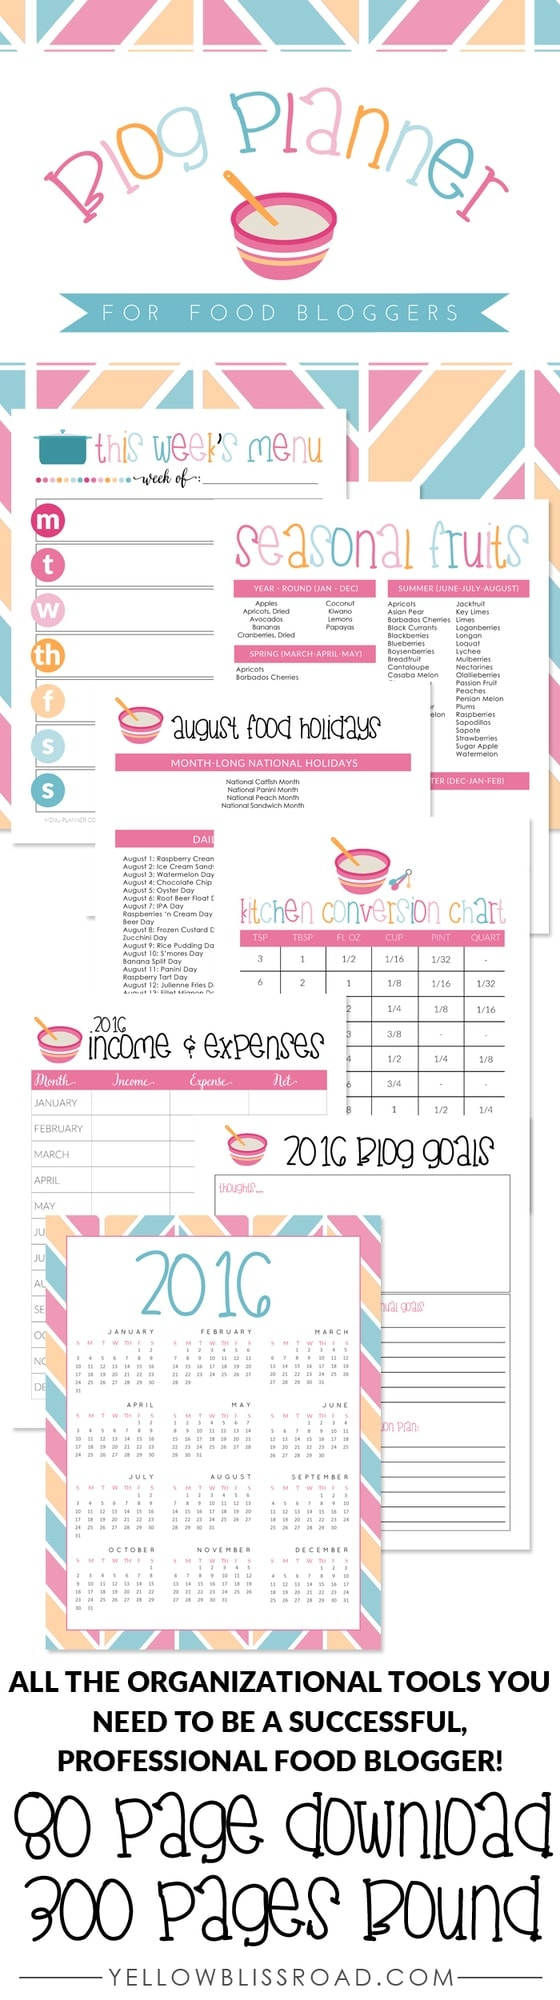 Blog Planner just for Food Bloggers! All the tools you need to get organized and stay organized as a professional food blogger